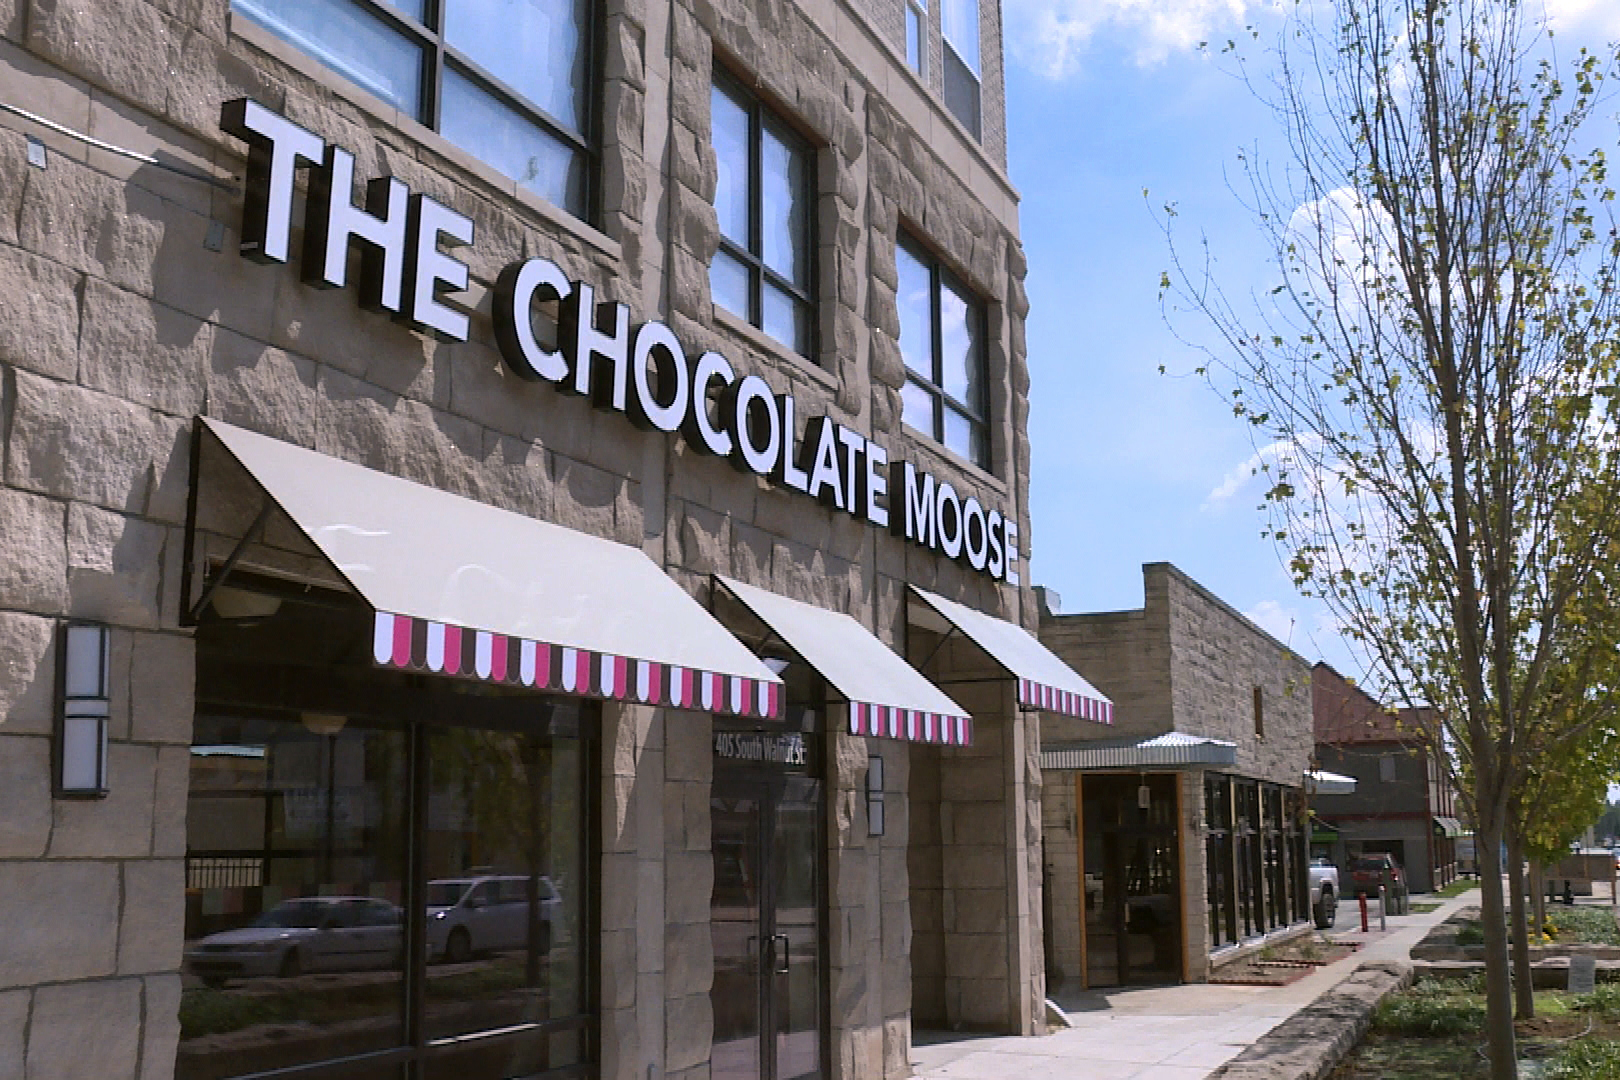 The Chocolate Moose will open on the ground floor of a new multi-use building sitting on the same tract of land as the original brown building.